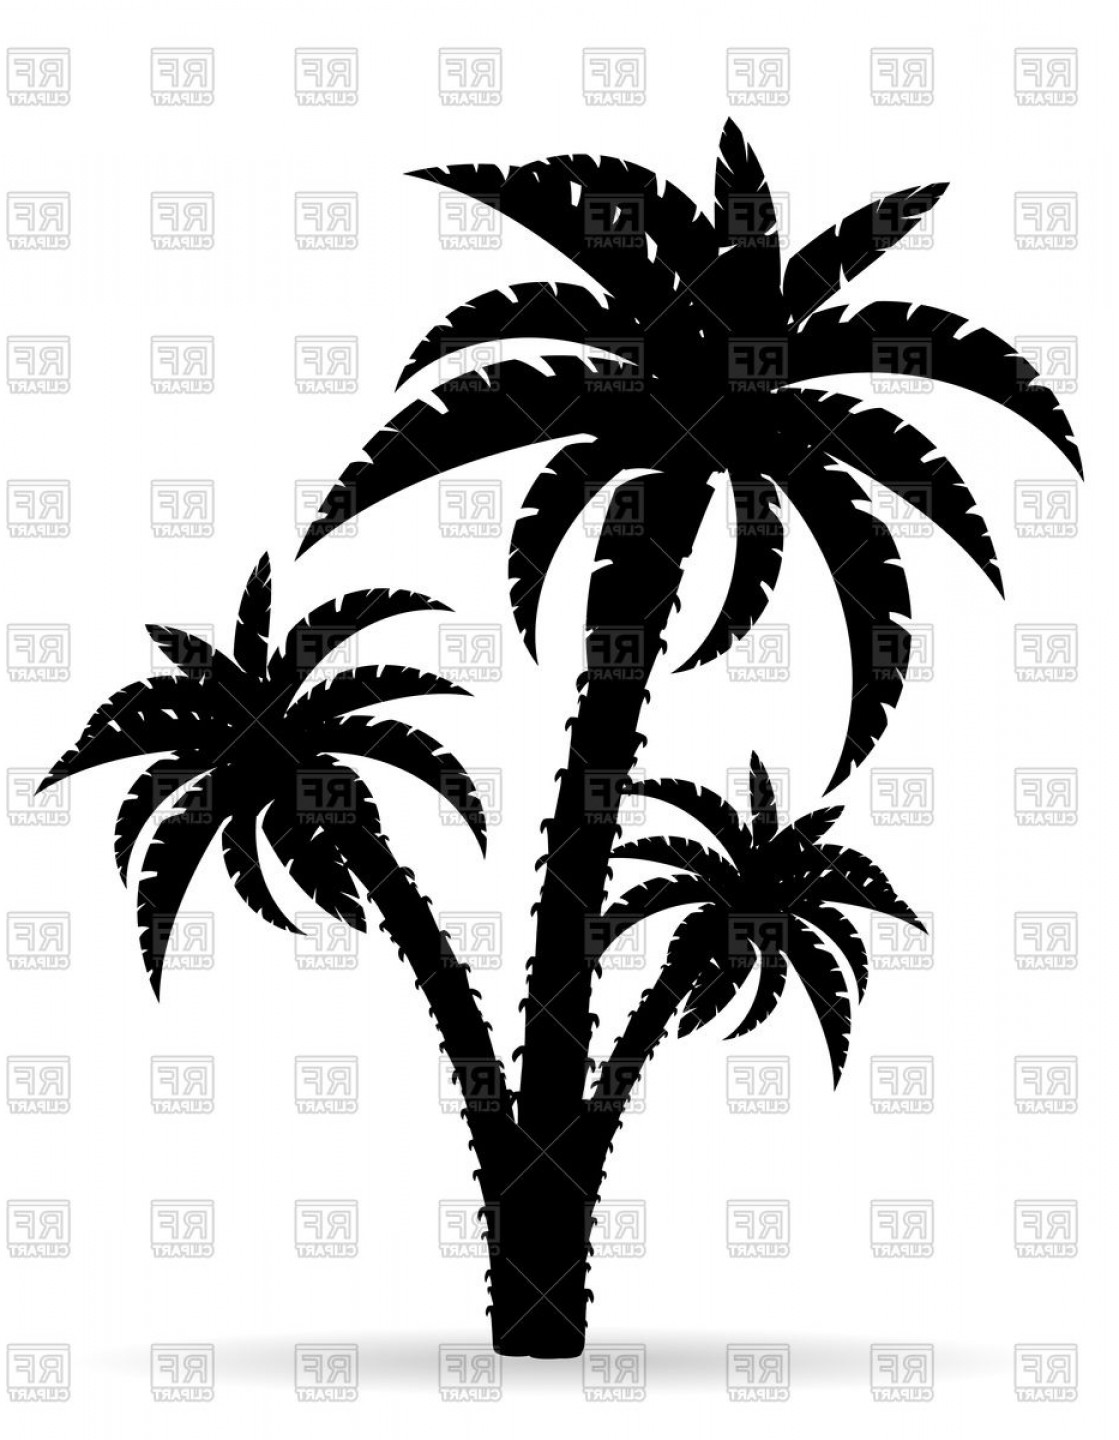 Contoon Free Black Vector Tree: Cartoon Palm Tree Black Outline Silhouette Vector Clipart